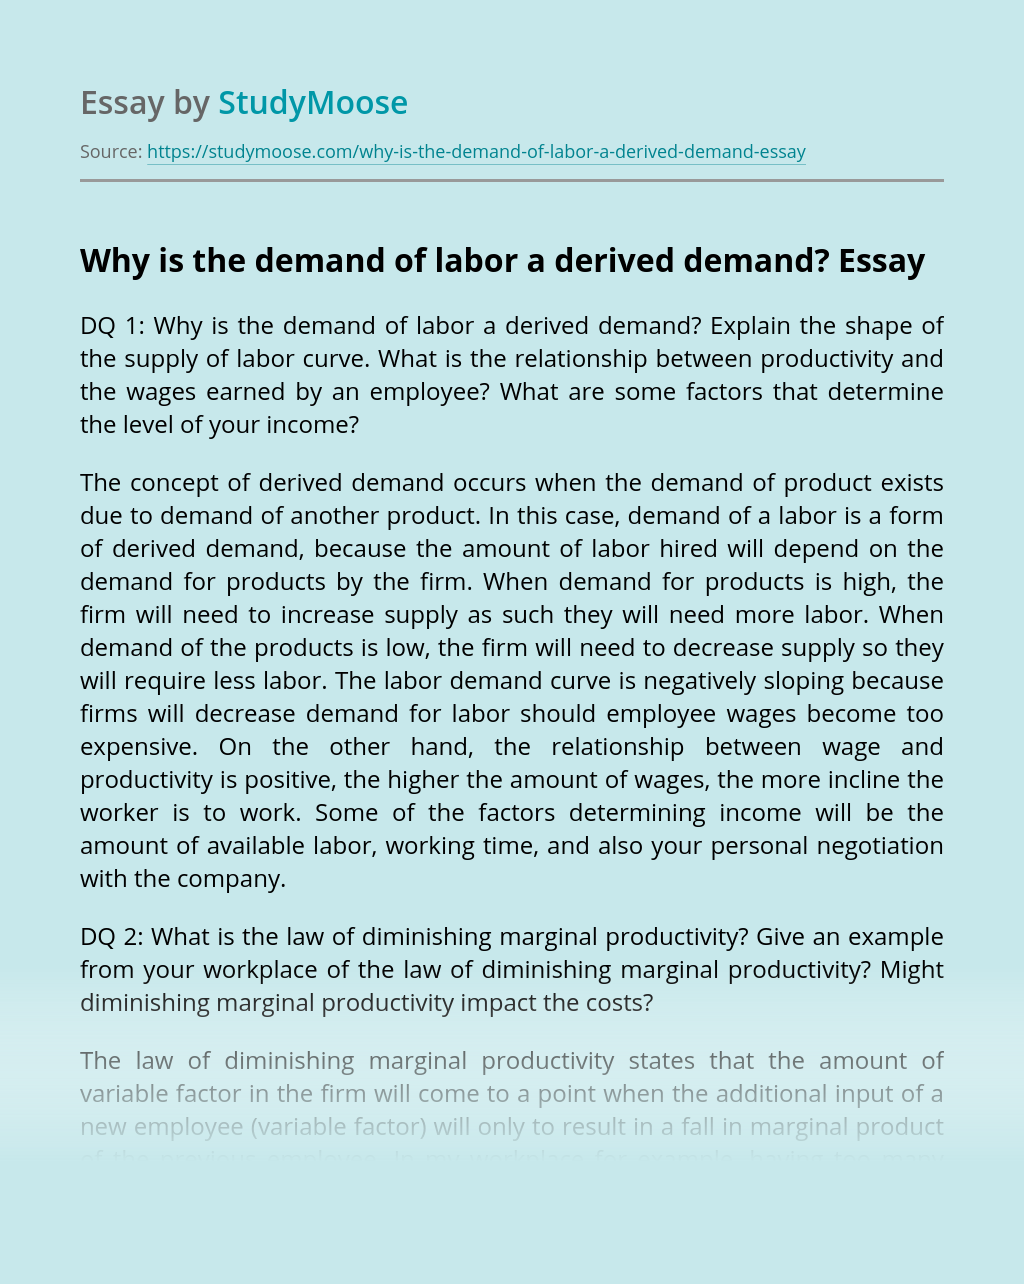 Why is the demand of labor a derived demand?